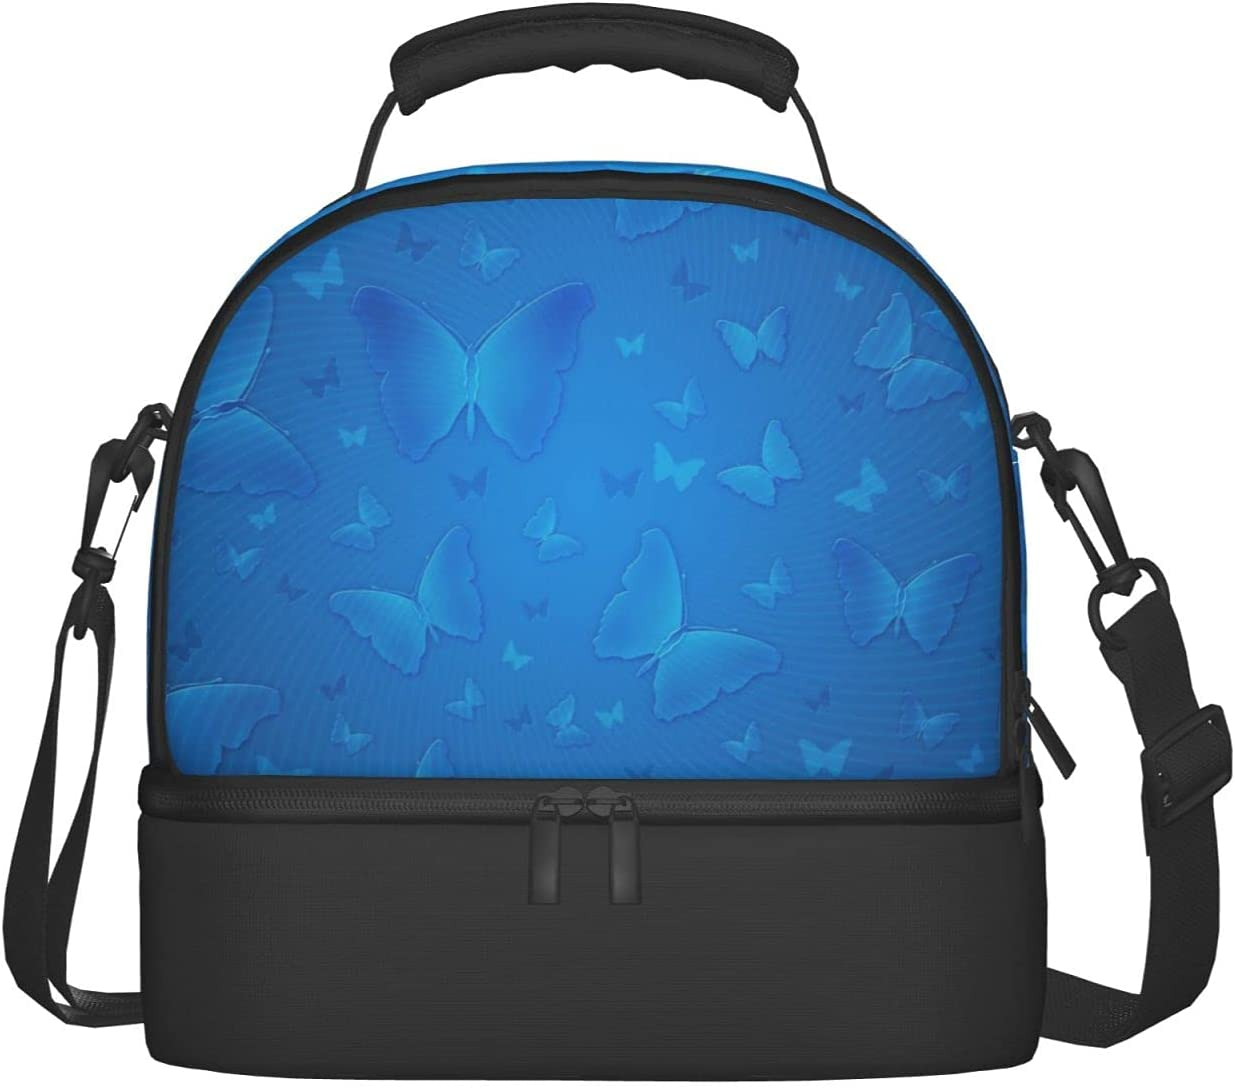 Butterfly Graphic Spring new work Lunch Mesa Mall Bag Shoulder Strap Insulated Adjustable